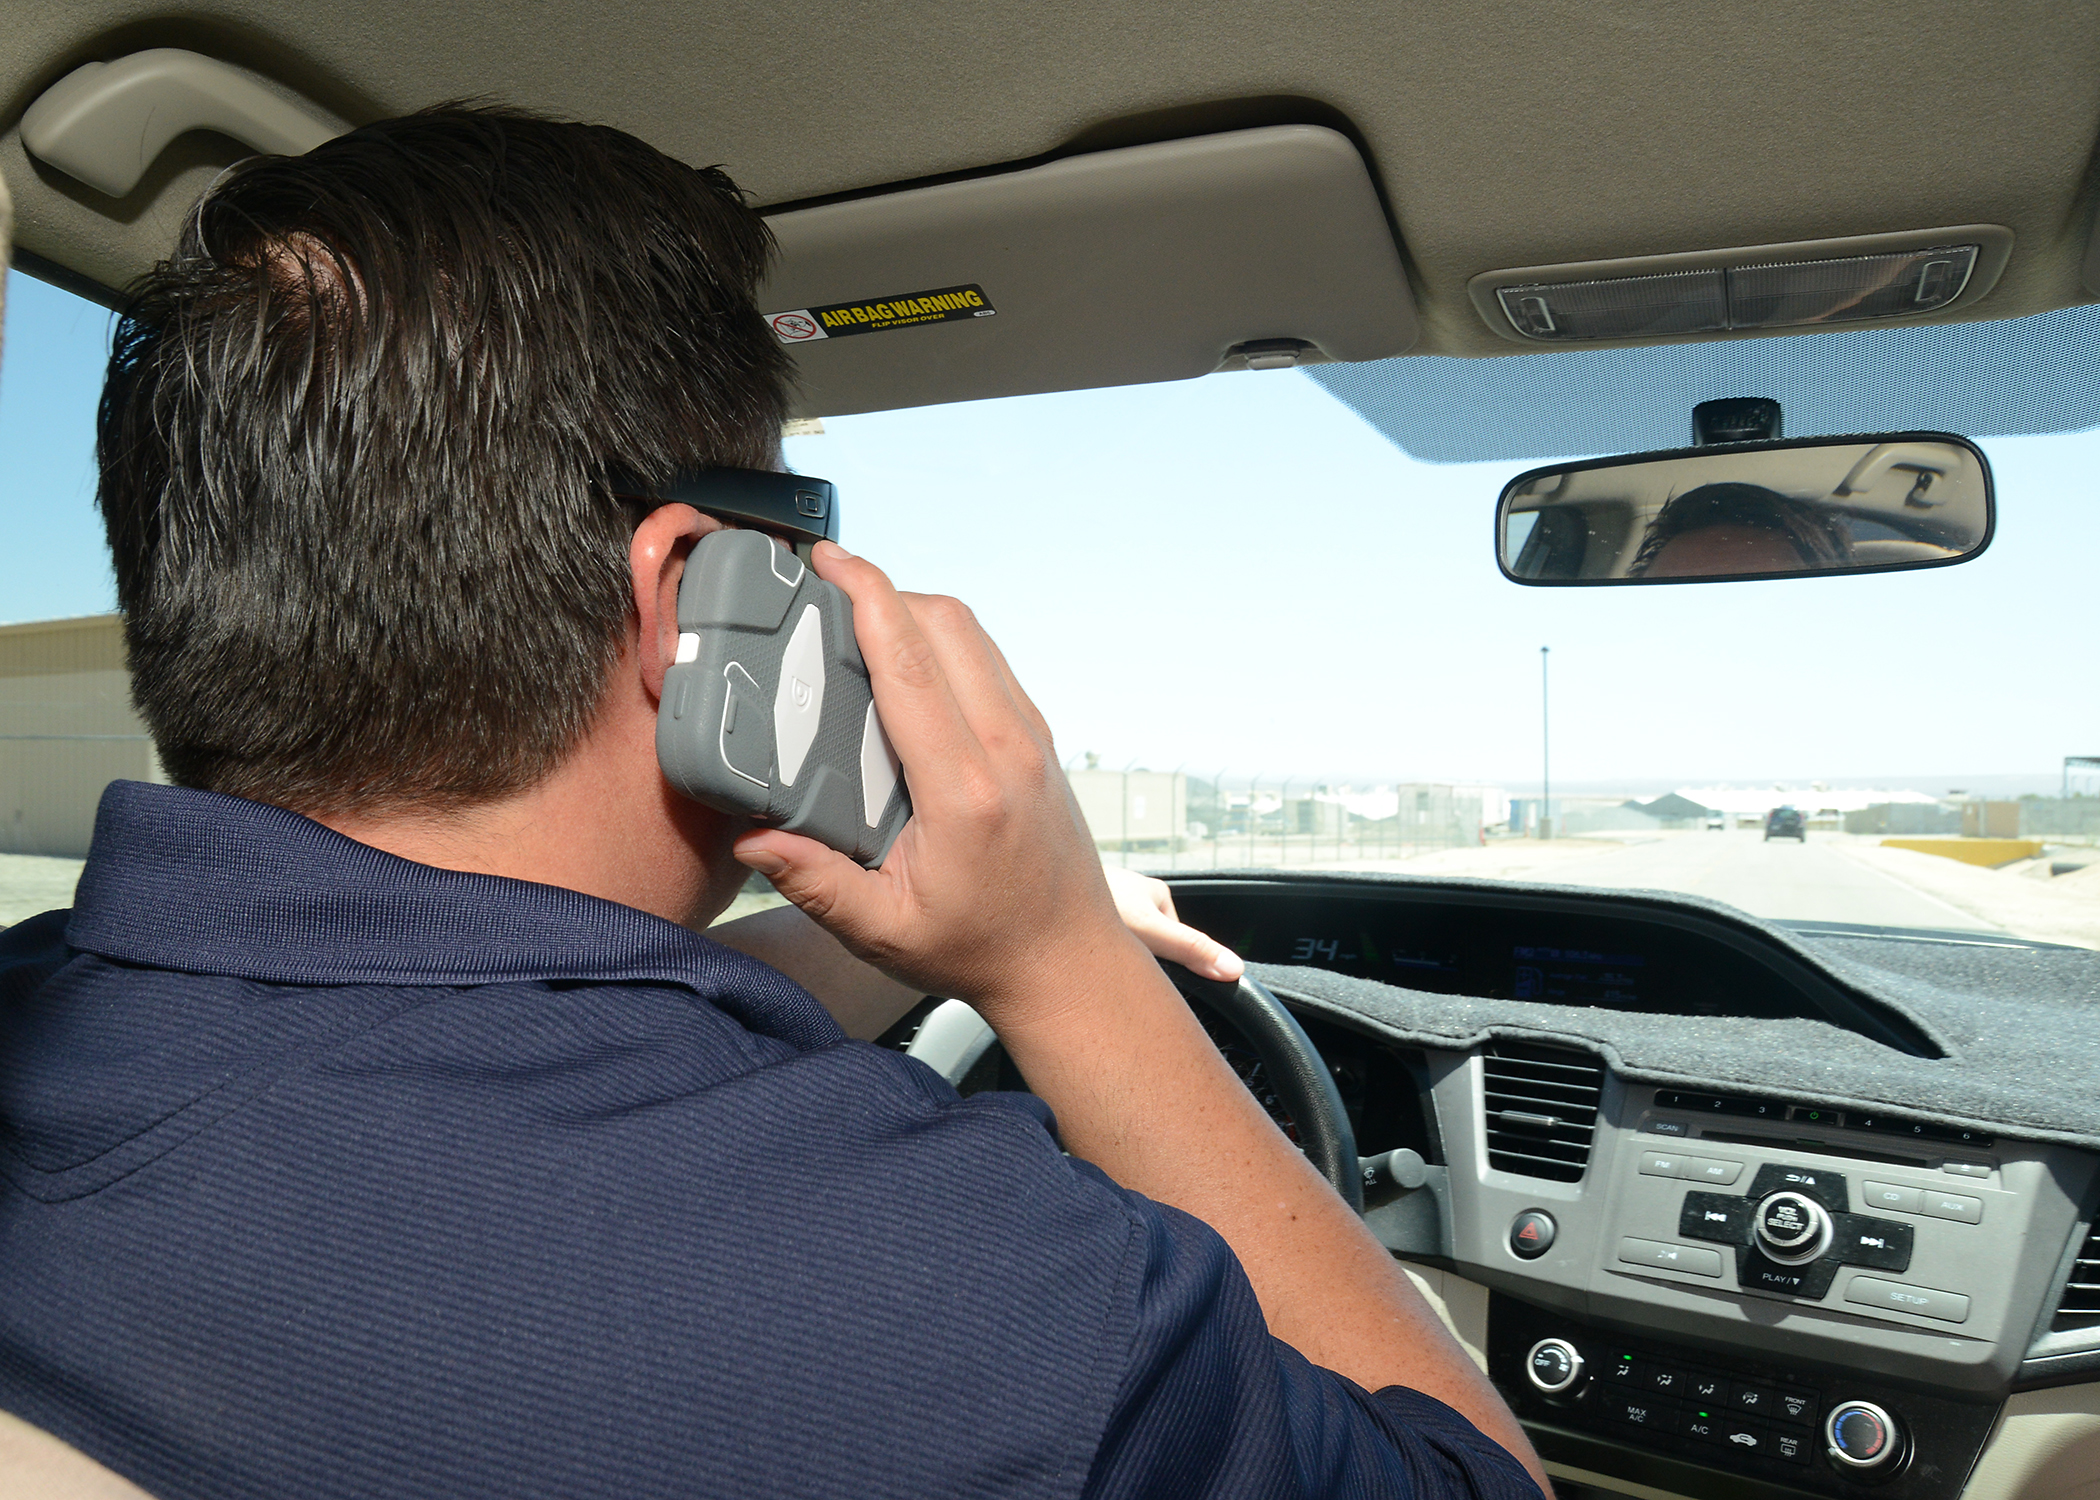 Nationwide Enters Telematics Market with Distracted Driving Solution